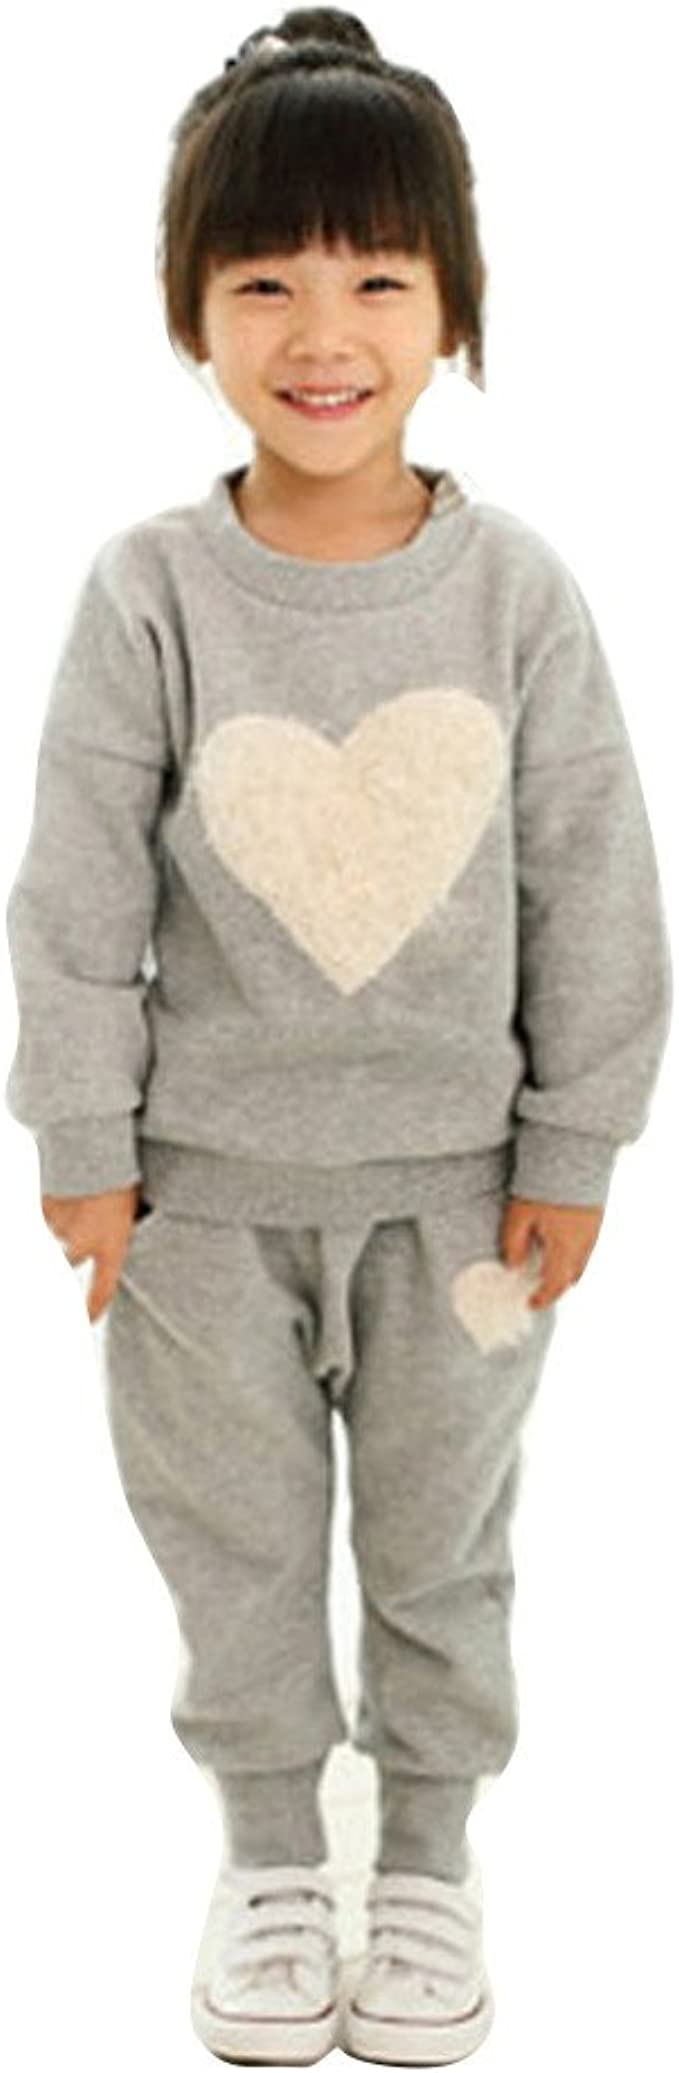 Toddler Baby Girl Clothes Sweatshirt Tops Pants Infant Outfits Sets Tracksuit US